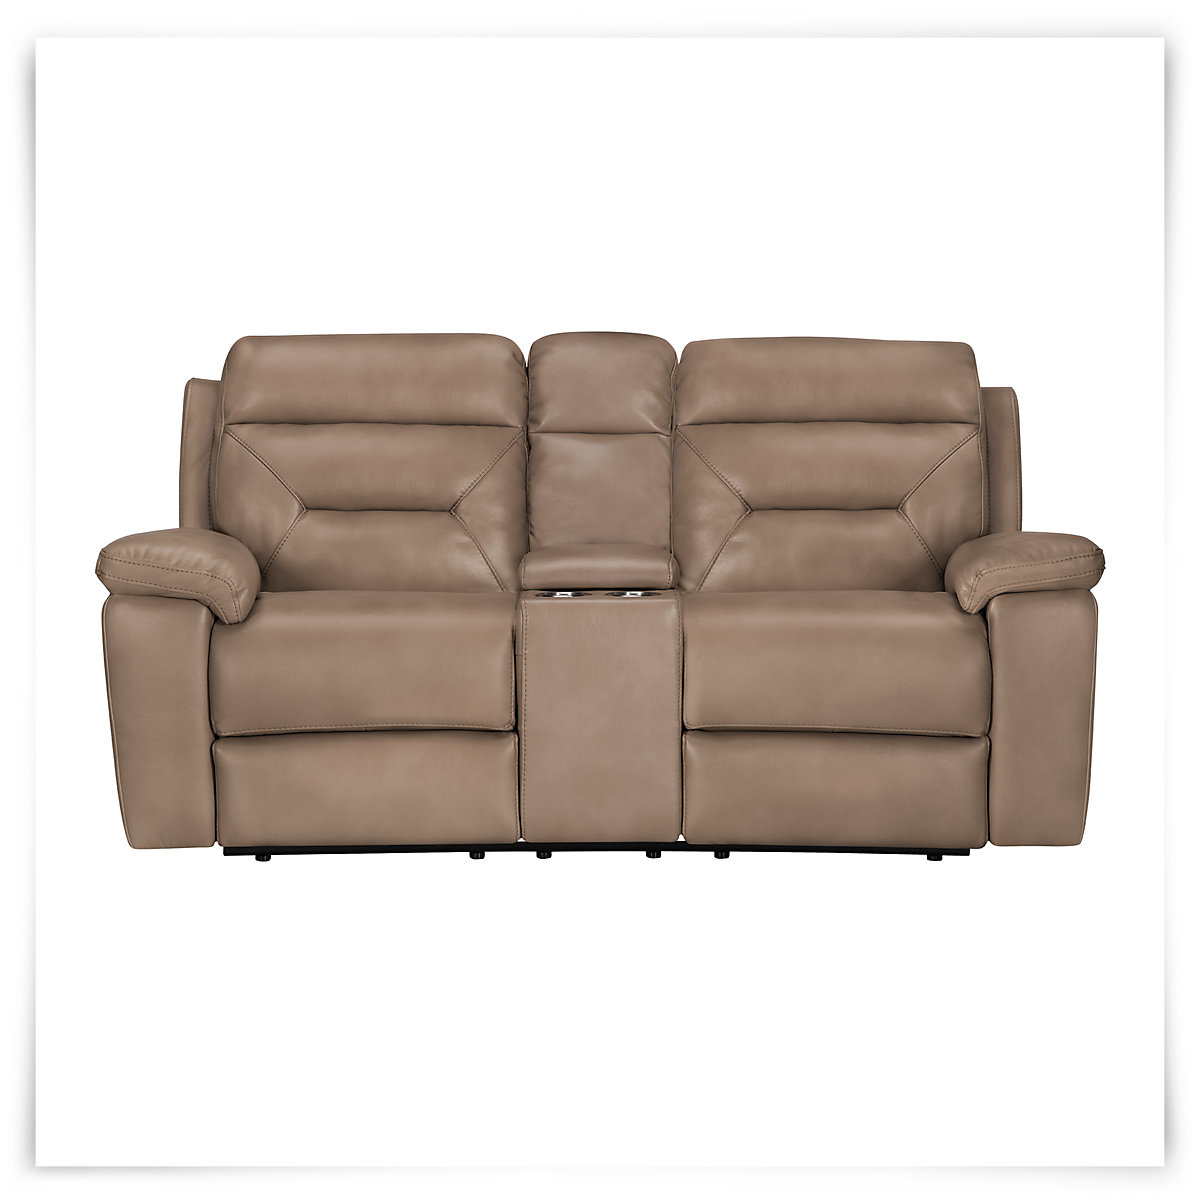 City Furniture: Phoenix Dk Beige Microfiber Reclining